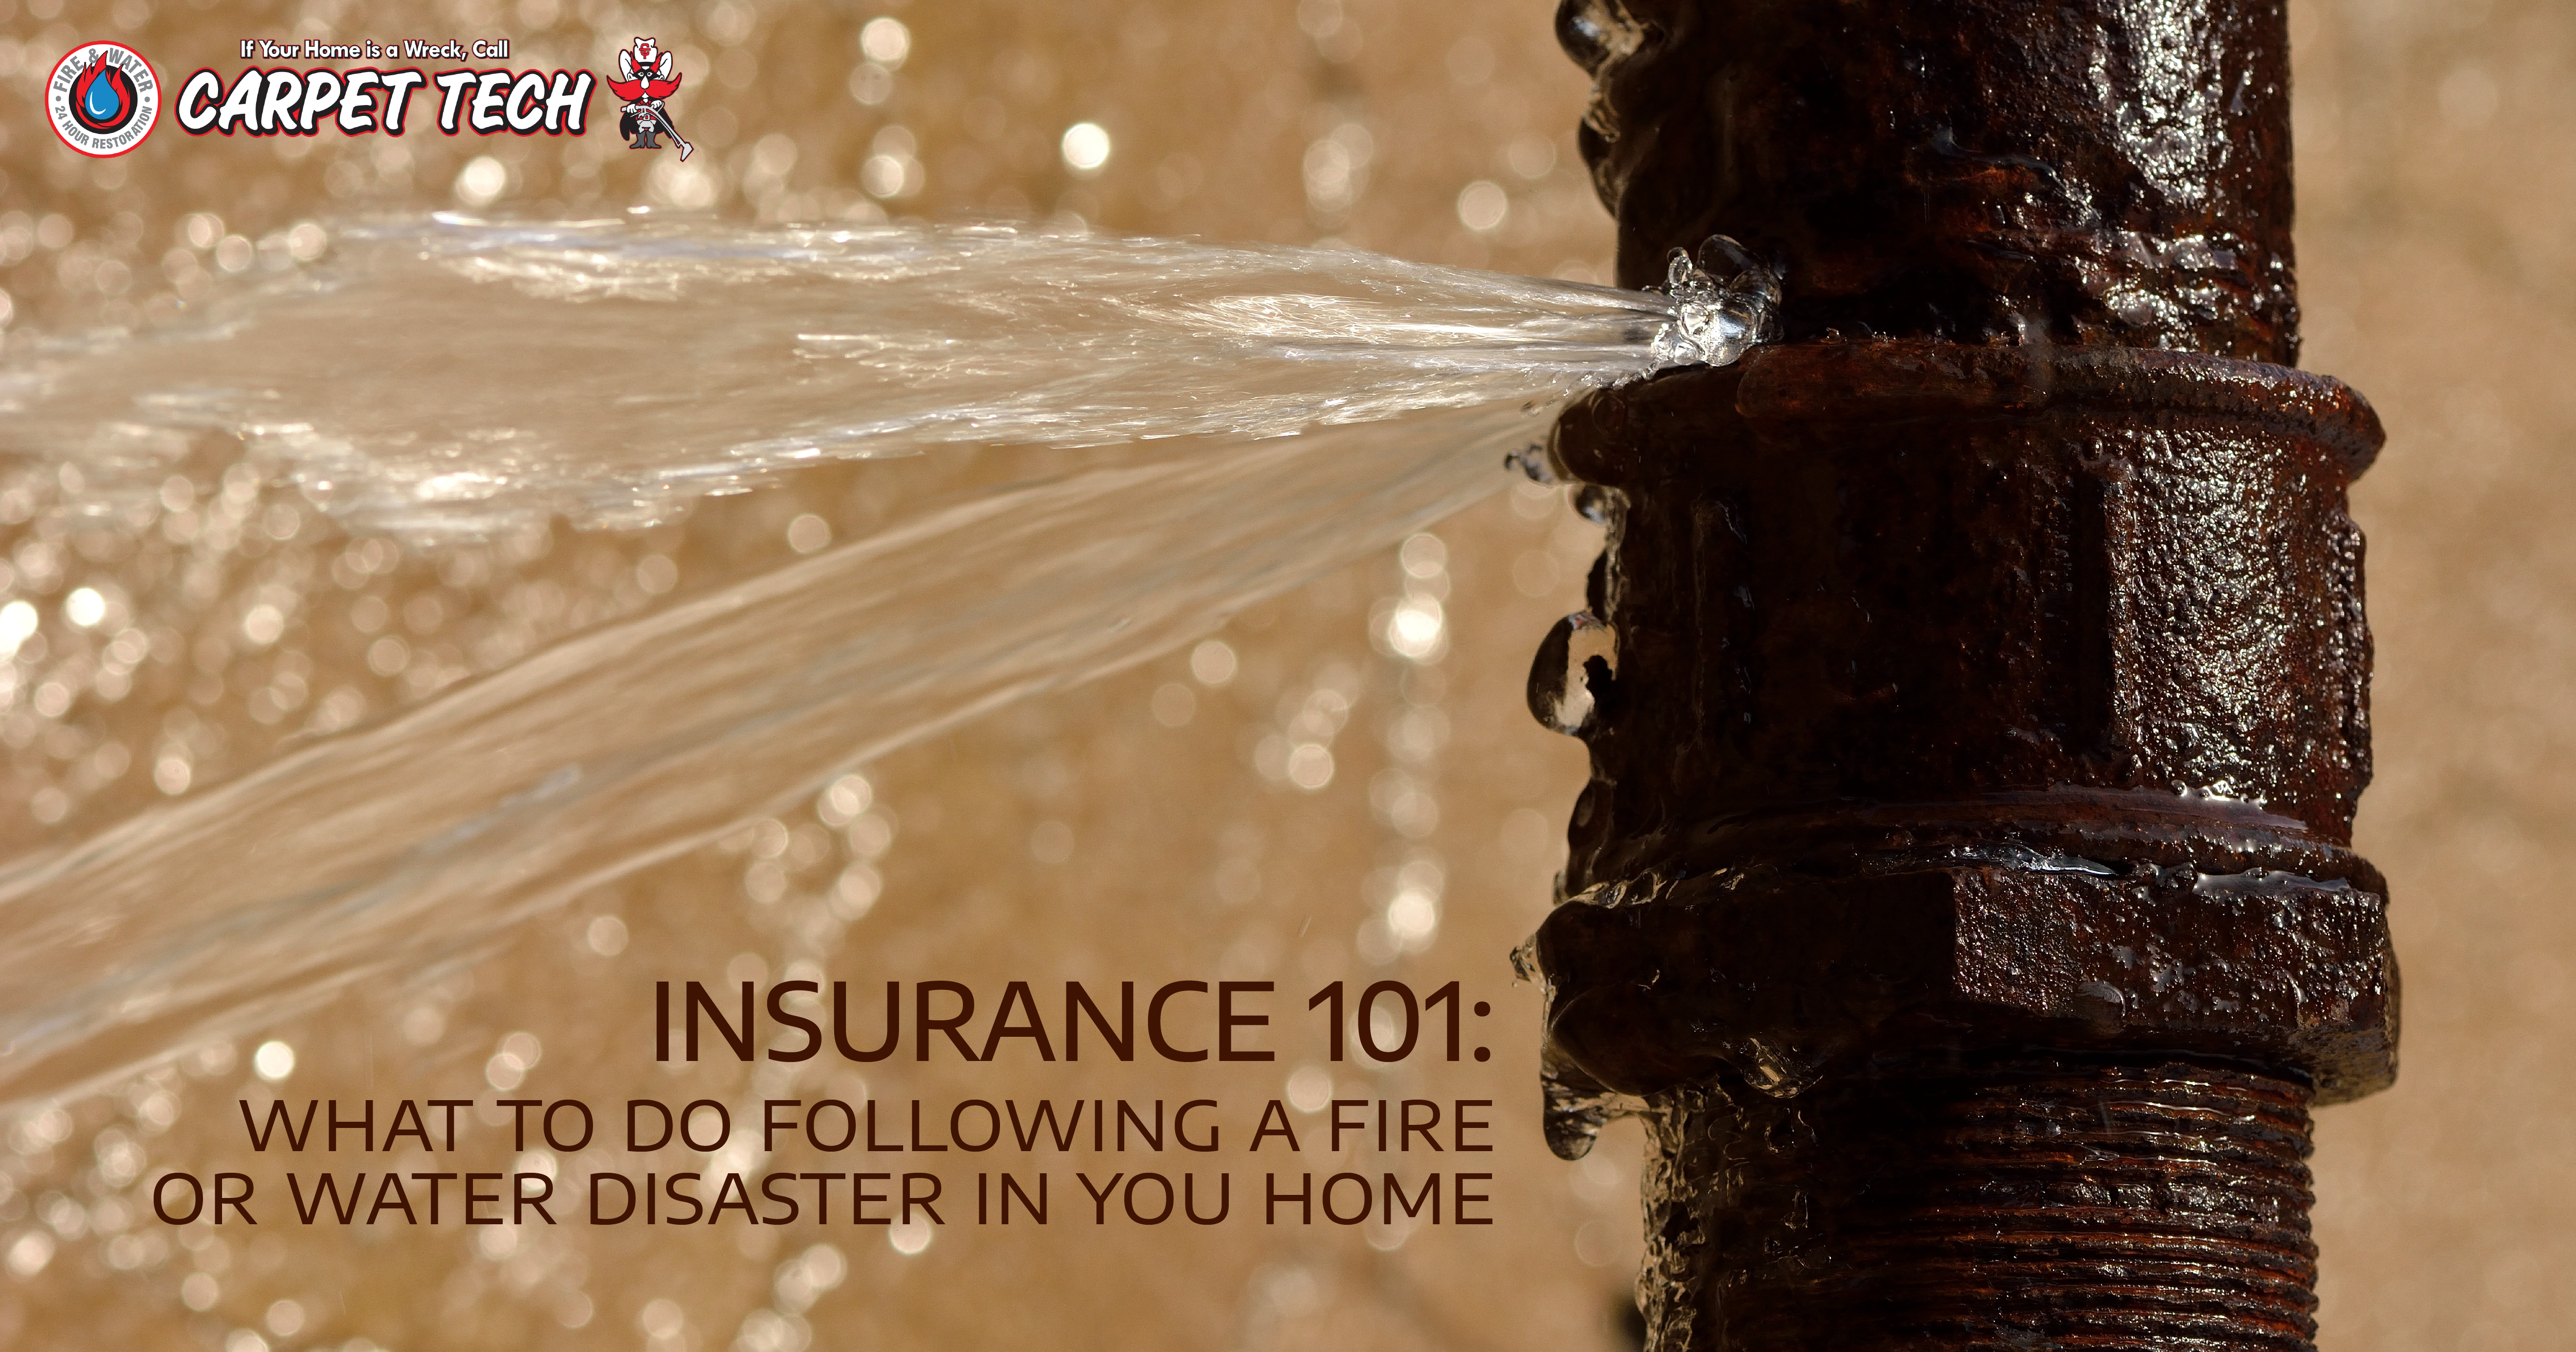 Insurance 101: What To Do Following a Fire or Water Disaster in Your Home